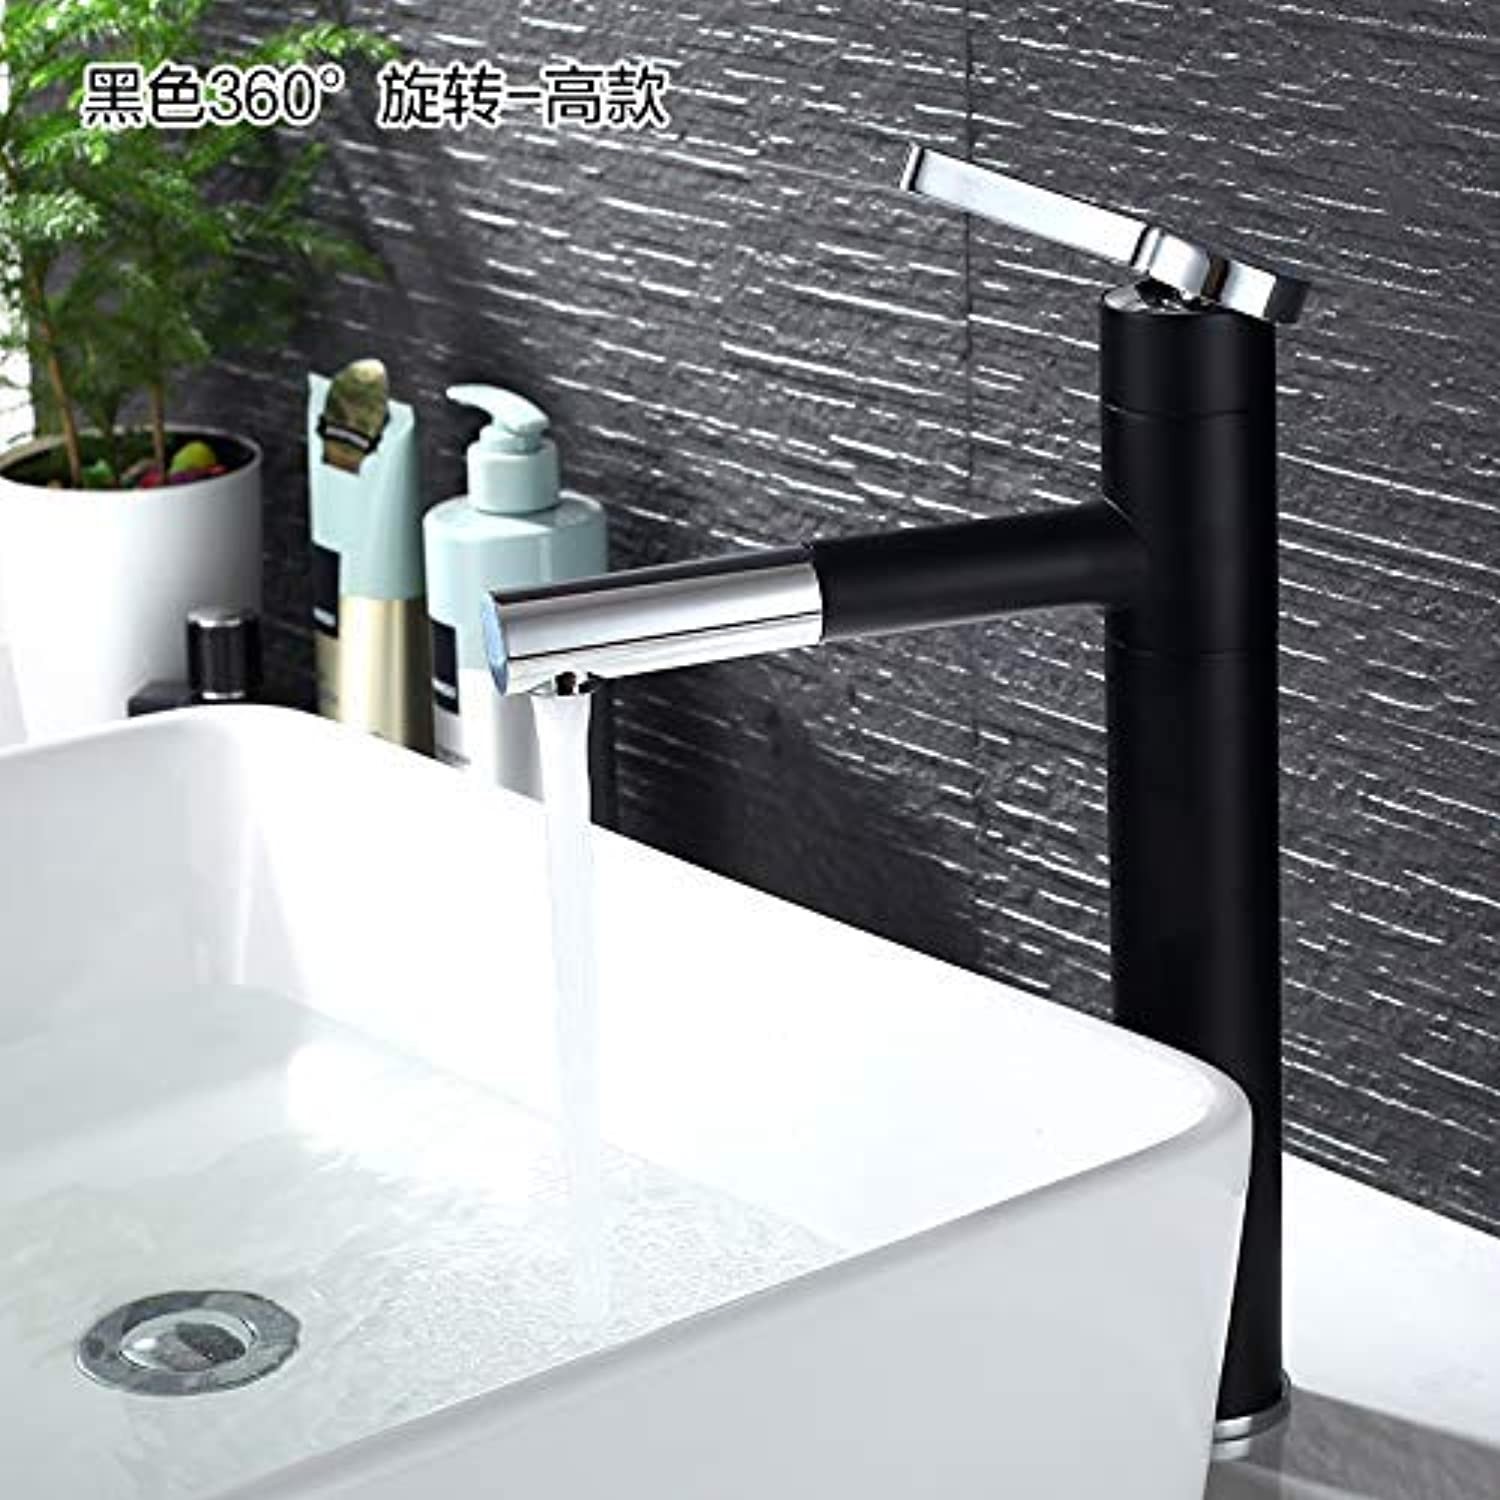 Oudan White Paint 360 Degree redating Faucet Hot and Cold Single Hole Copper Basin Faucet Basin Faucet Personality Faucet, F (color   D, Size   -)